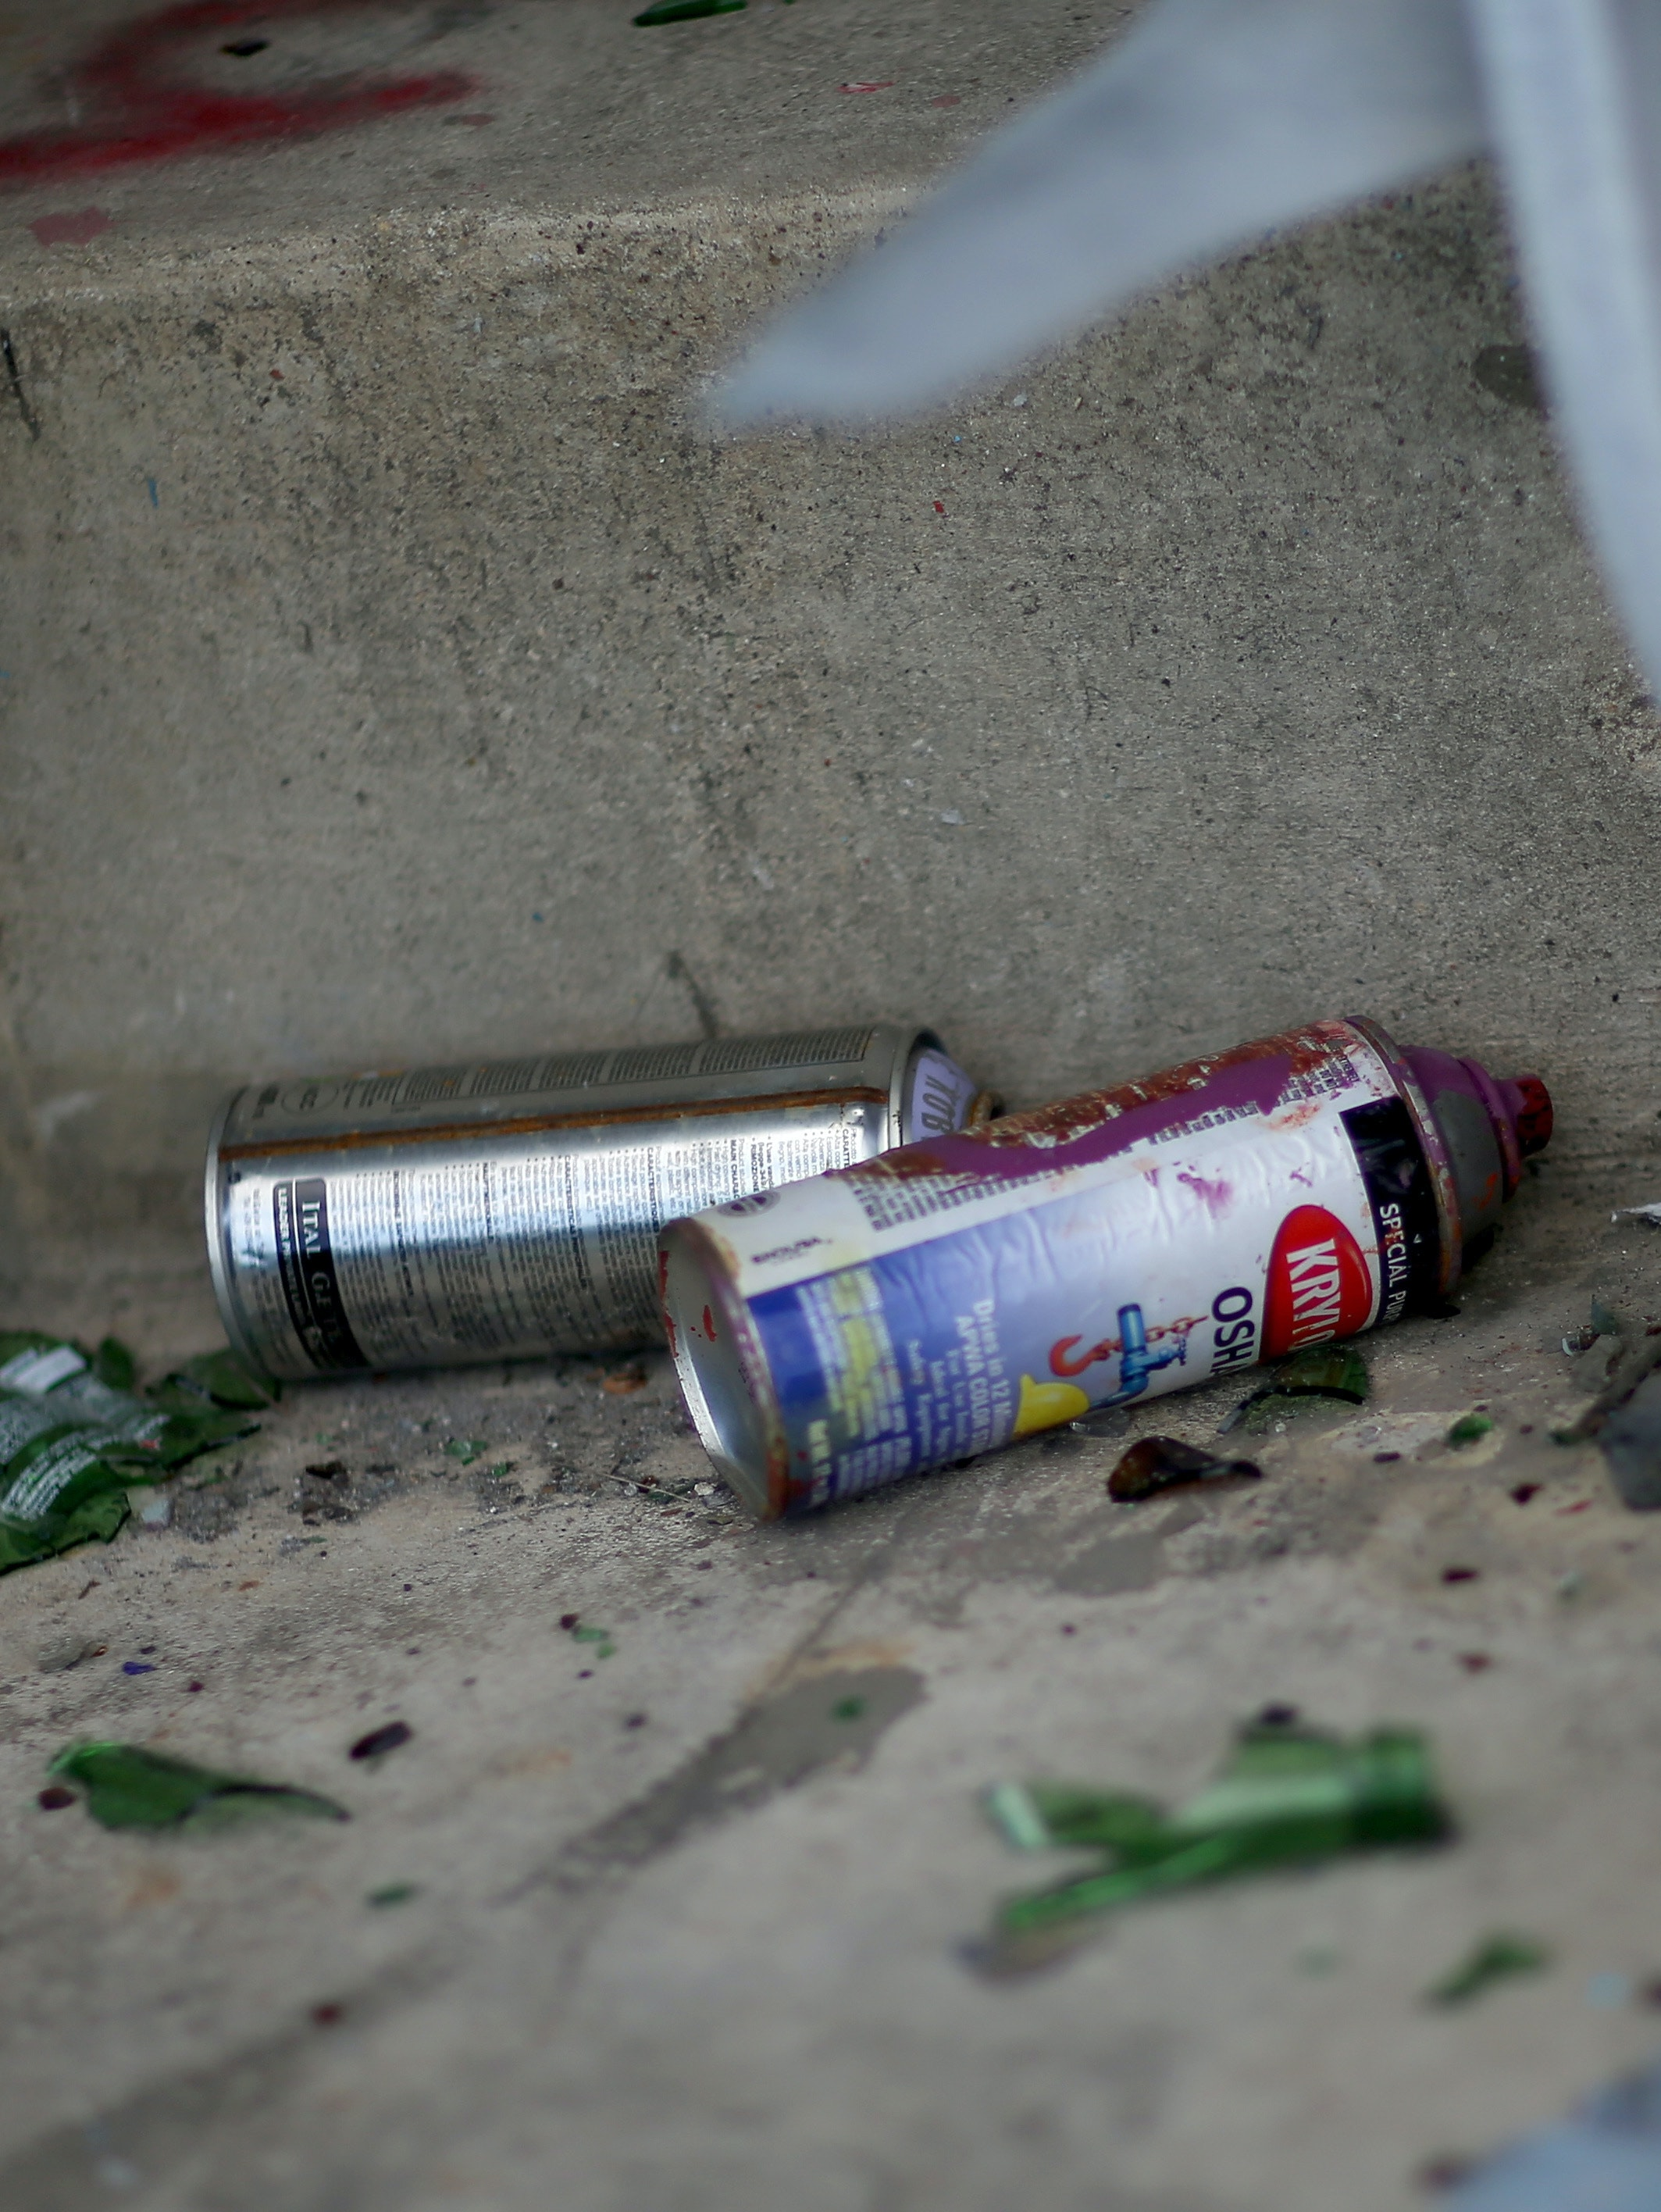 Abandoned spray paint cans are seen in the historic Miami Marine Stadium as city officials announced a plan to bring the Miami International Boat Show to the venue in 2016 and 2017 with hopes to renovate the site by raising $30 million for a restoration project on November 13, 2014 in Miami, Florida.  The 6,566-seat arena built in 1962 and abandoned after Hurricane Andrew in 1992 is the only stadium in the United States built for the purpose of watching power boat races and has been used for memorable concerts over the years until it was closed.